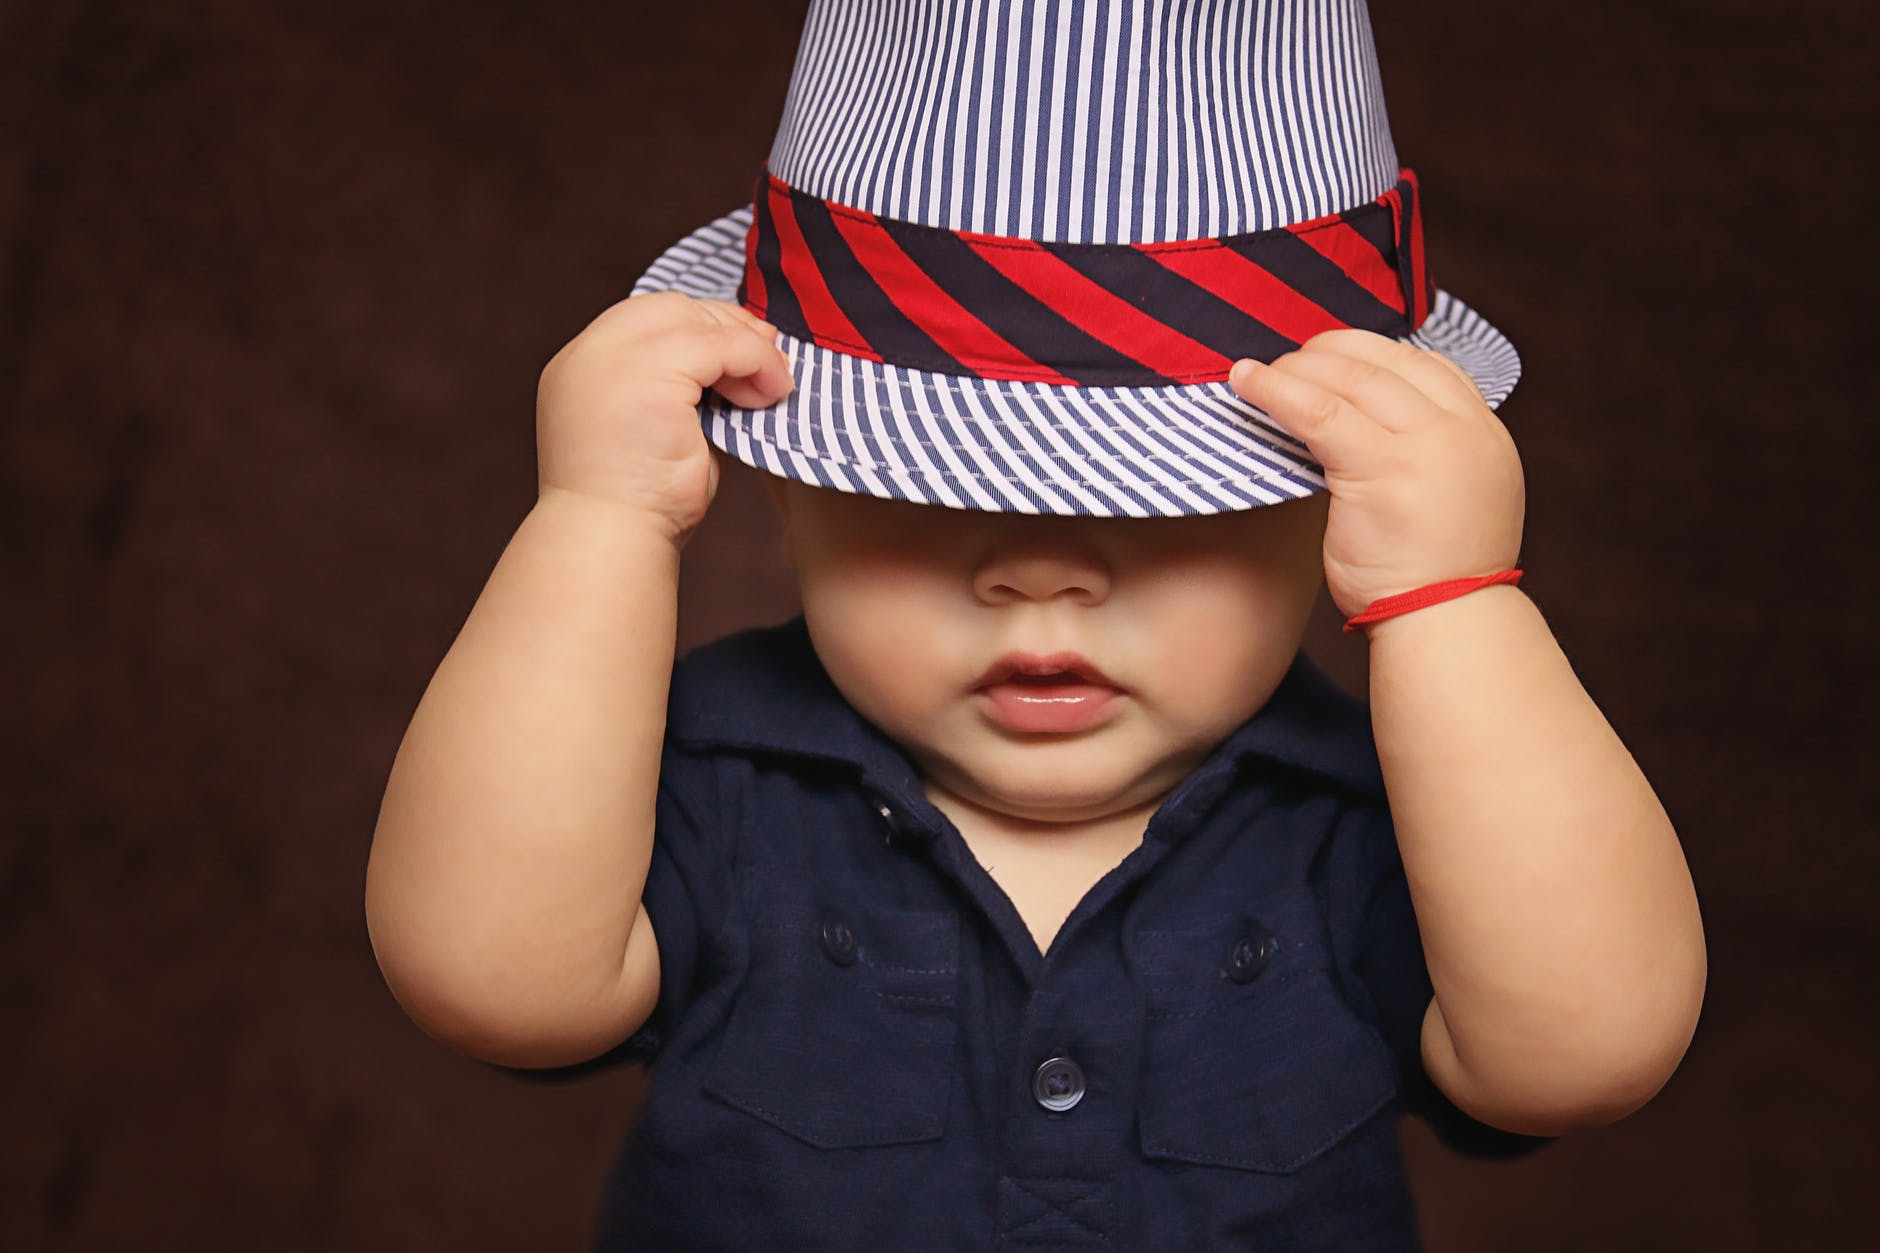 A young boy pulling a hat over his face